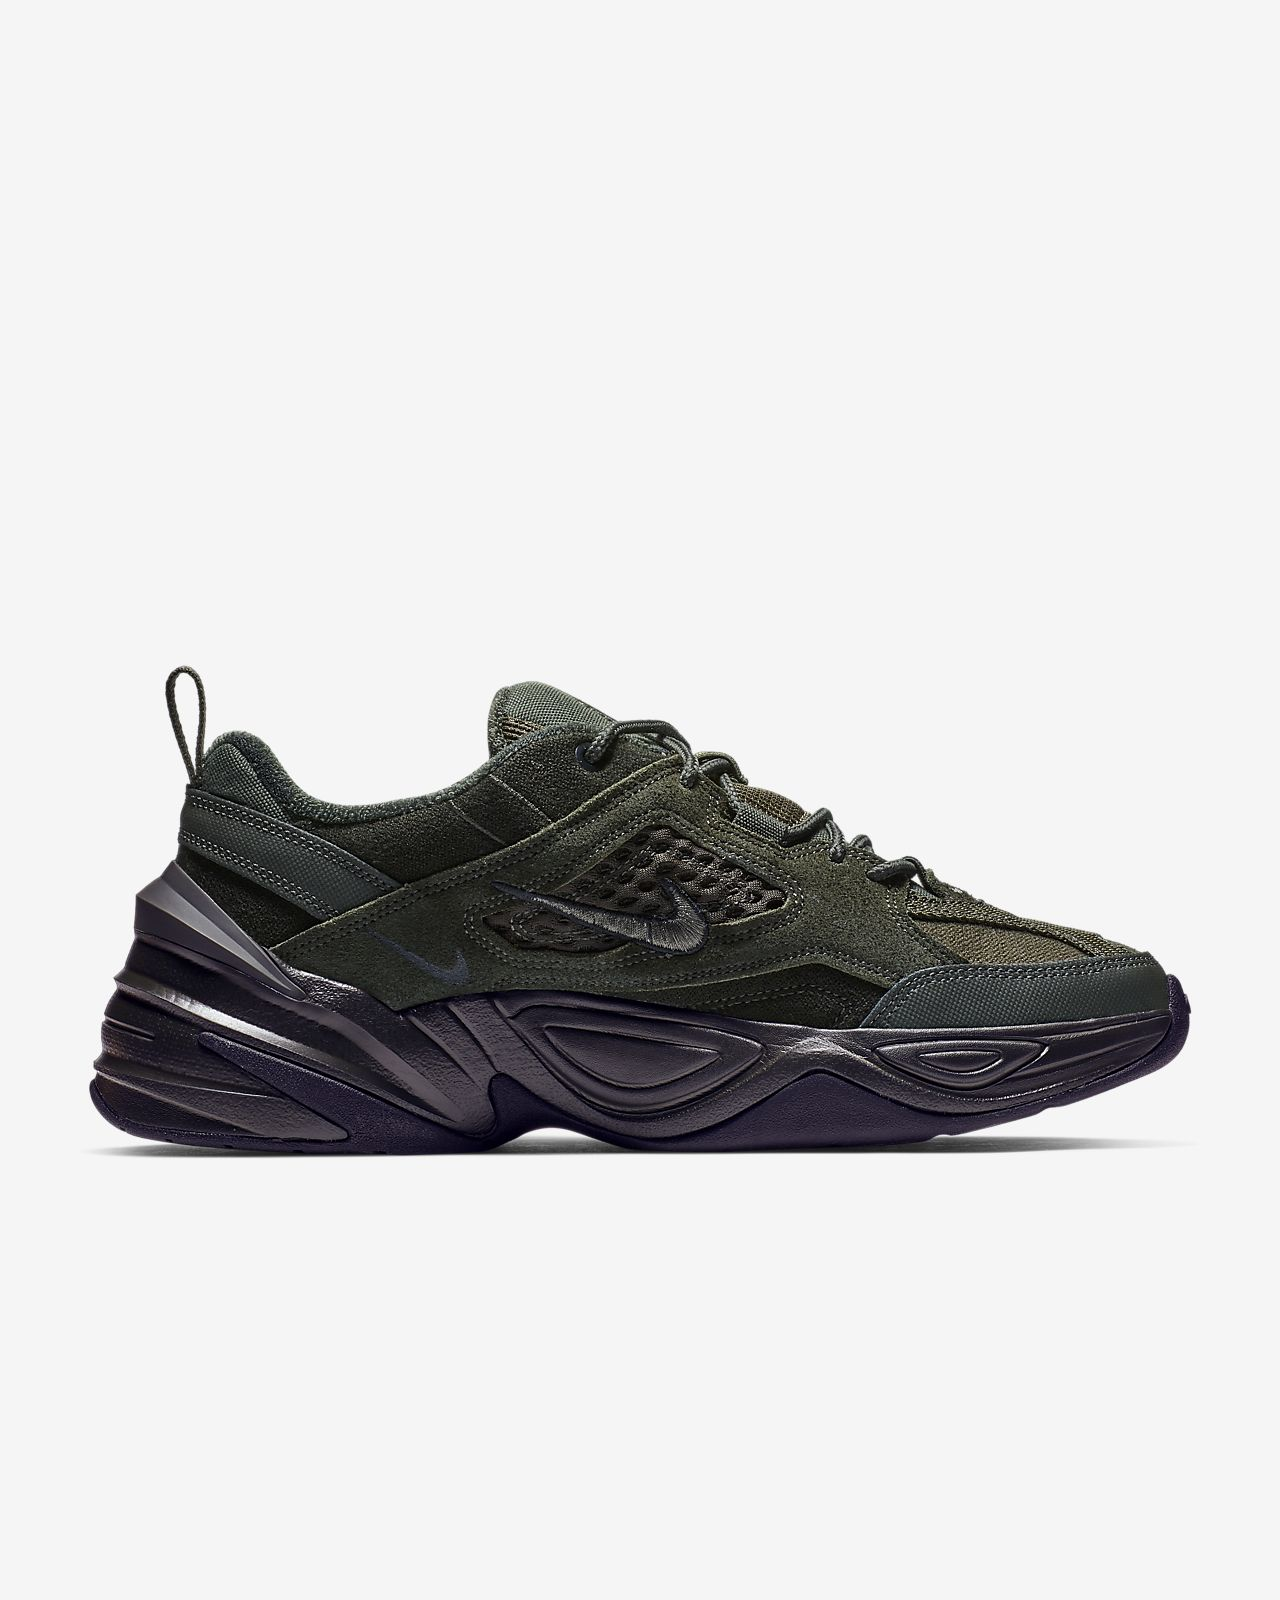 Nike Tekno HommeBe Sp Chaussure M2k Pour vN80nmwO